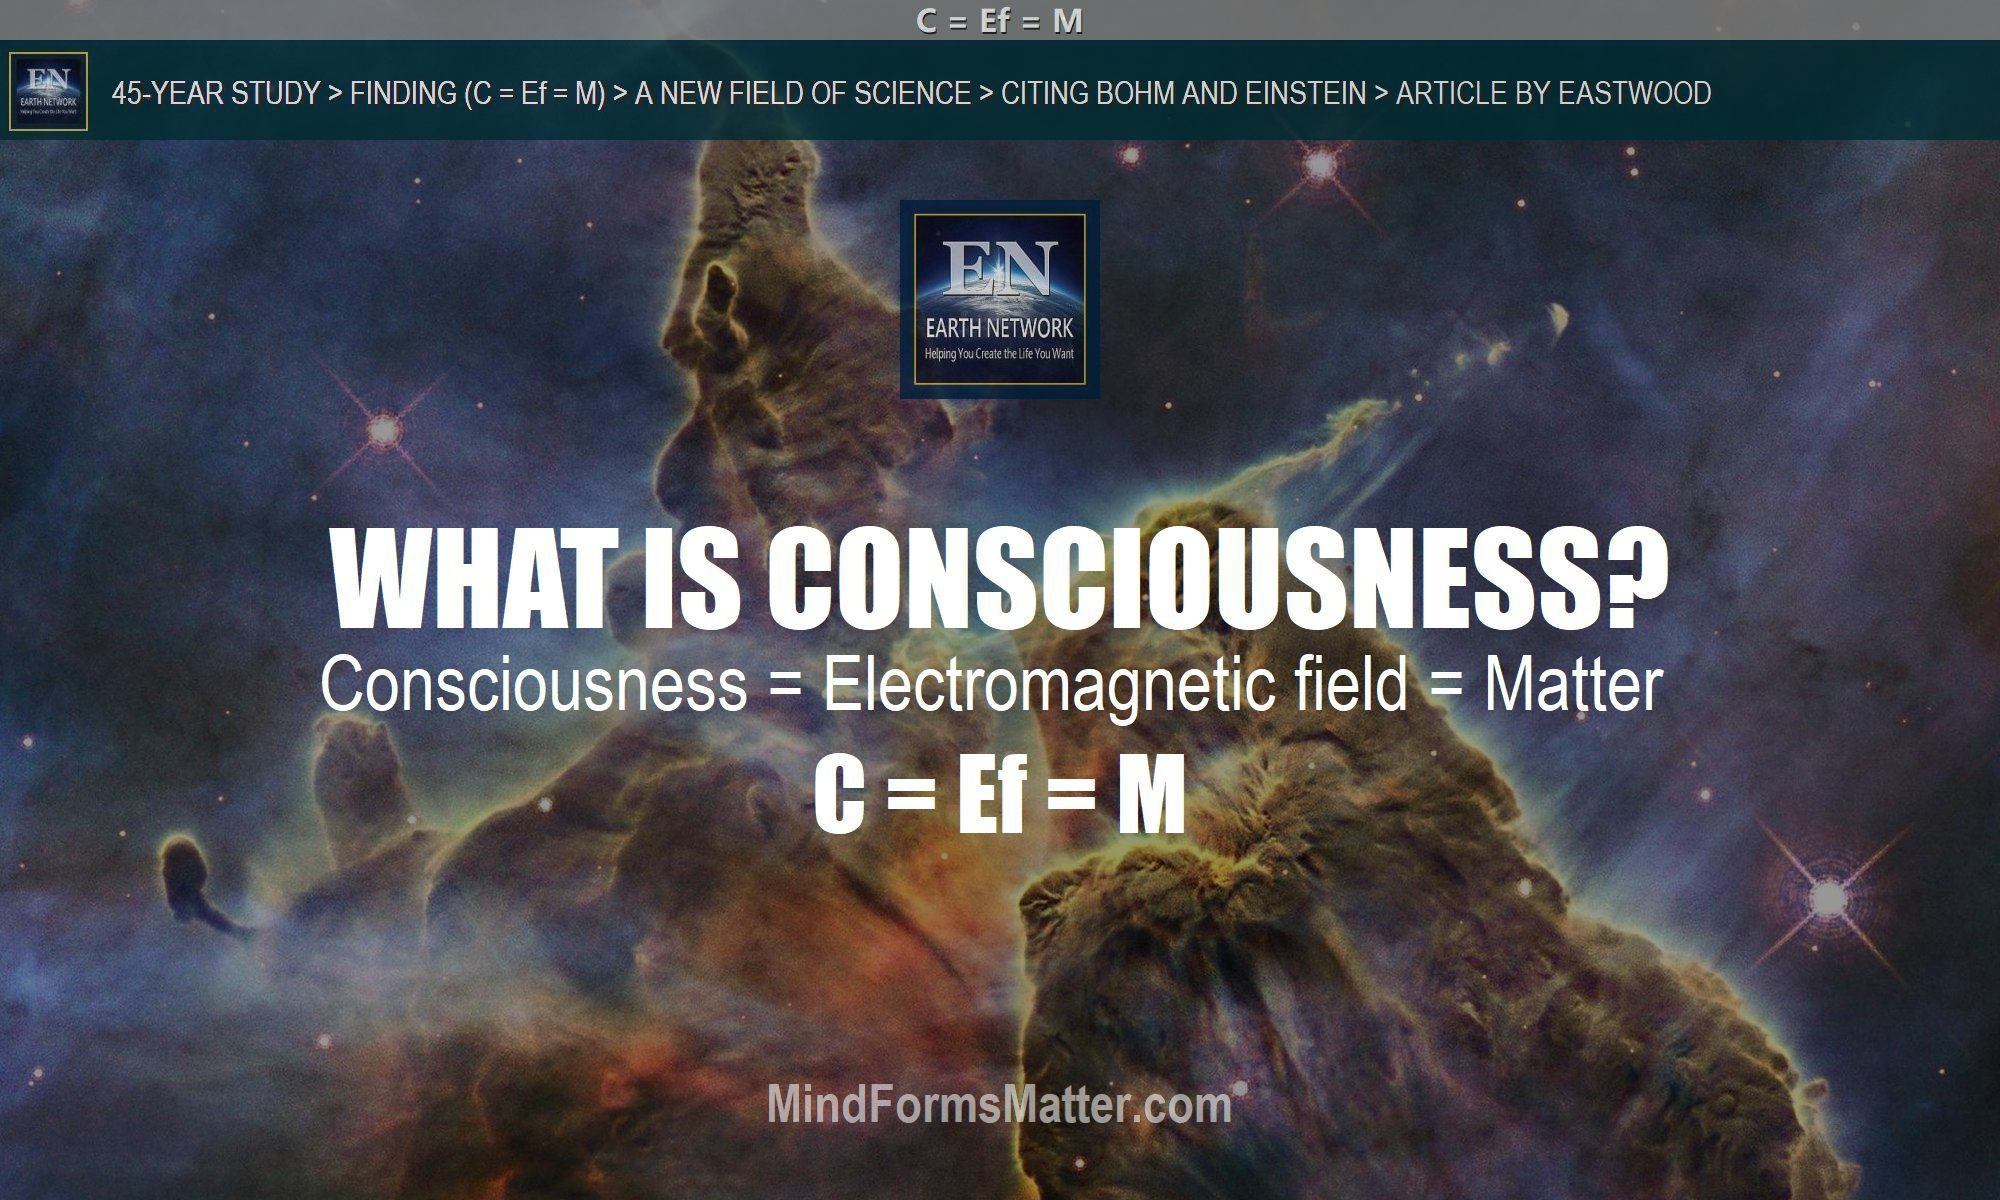 Galaxies depict mystery of creation and question what-is-consciousness-conscious-mind-made-of-electromagnetic-energy-fields-quantum-mind